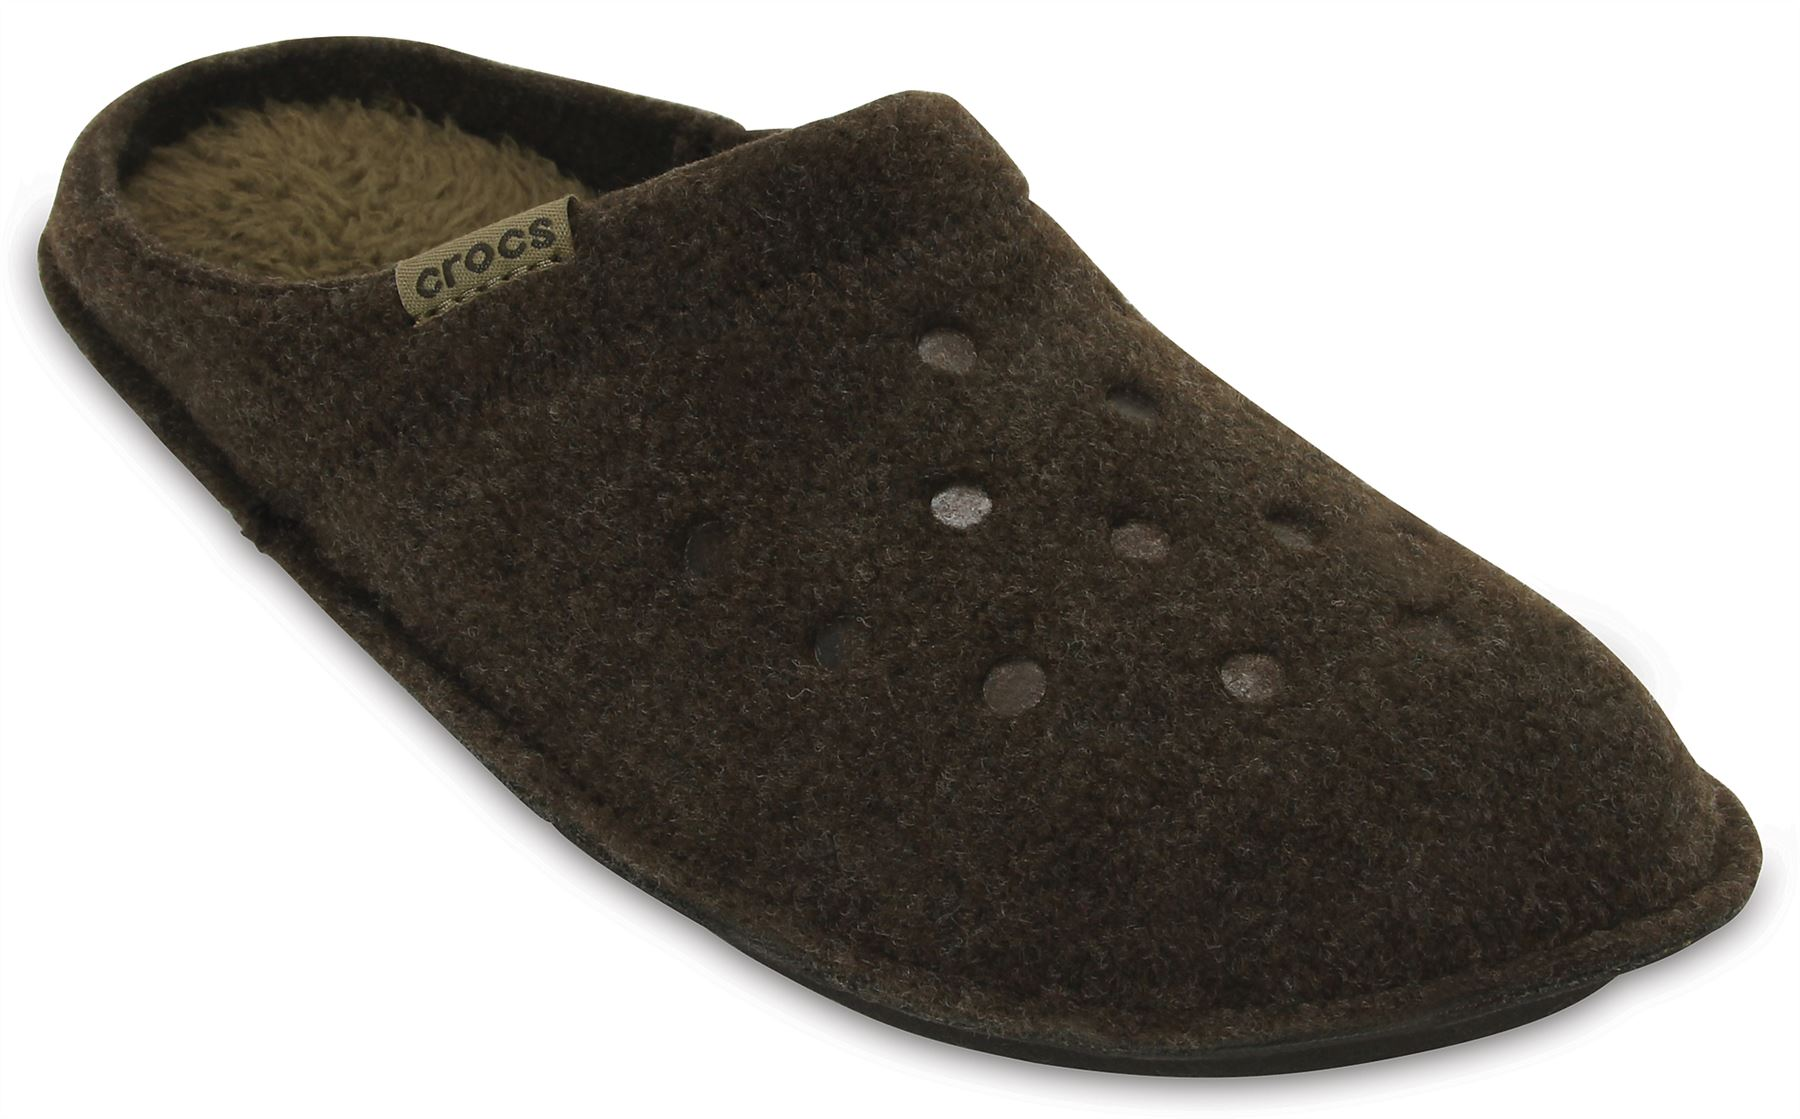 ca3bd4cdbe29 Crocs Classic Slipper Fleece Lined Roomy Fit Clogs Shoes in All ...